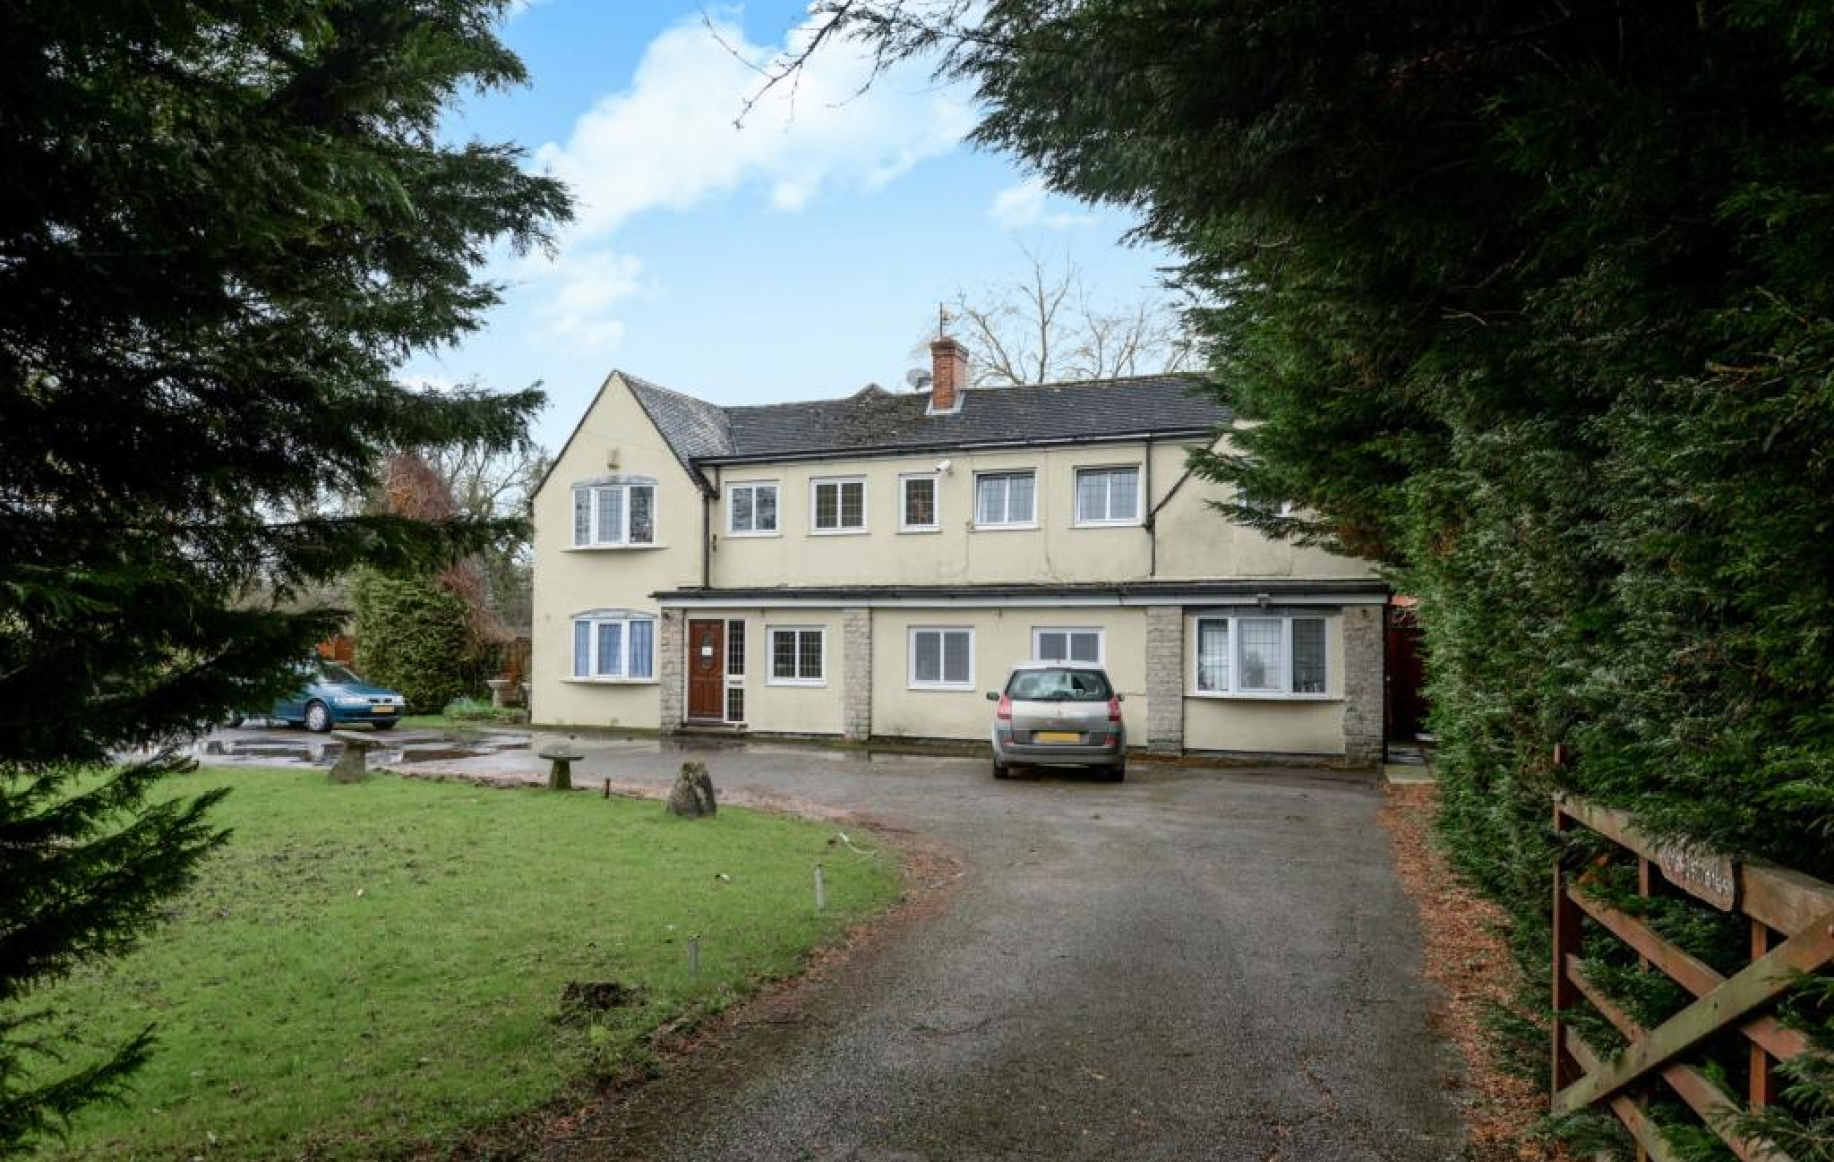 8 bedroom house. Main Photo 8 Bed House For Sale in The Paddock  Barnard Gate OX29 131THPA1